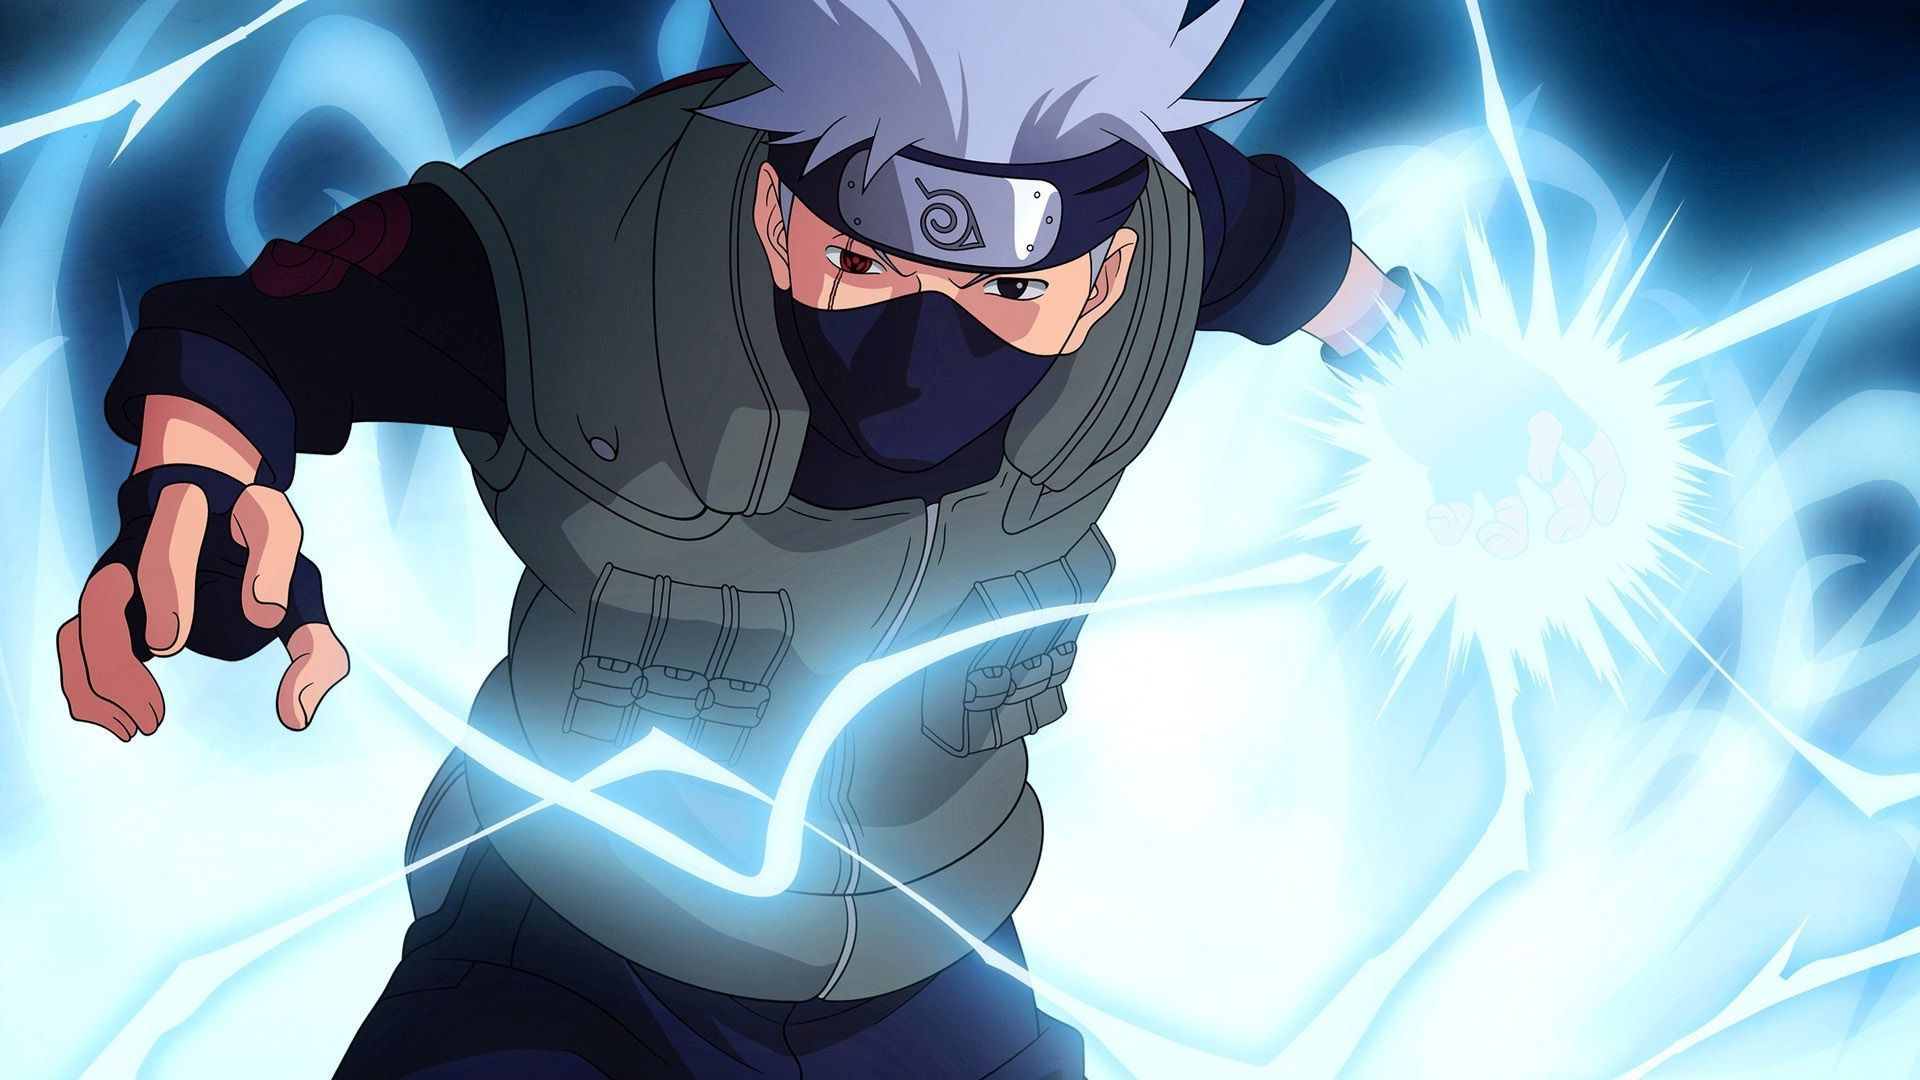 Naruto kakashi sensei wallpapers top free naruto kakashi sensei backgrounds wallpaperaccess - Kakashi sensei wallpaper ...